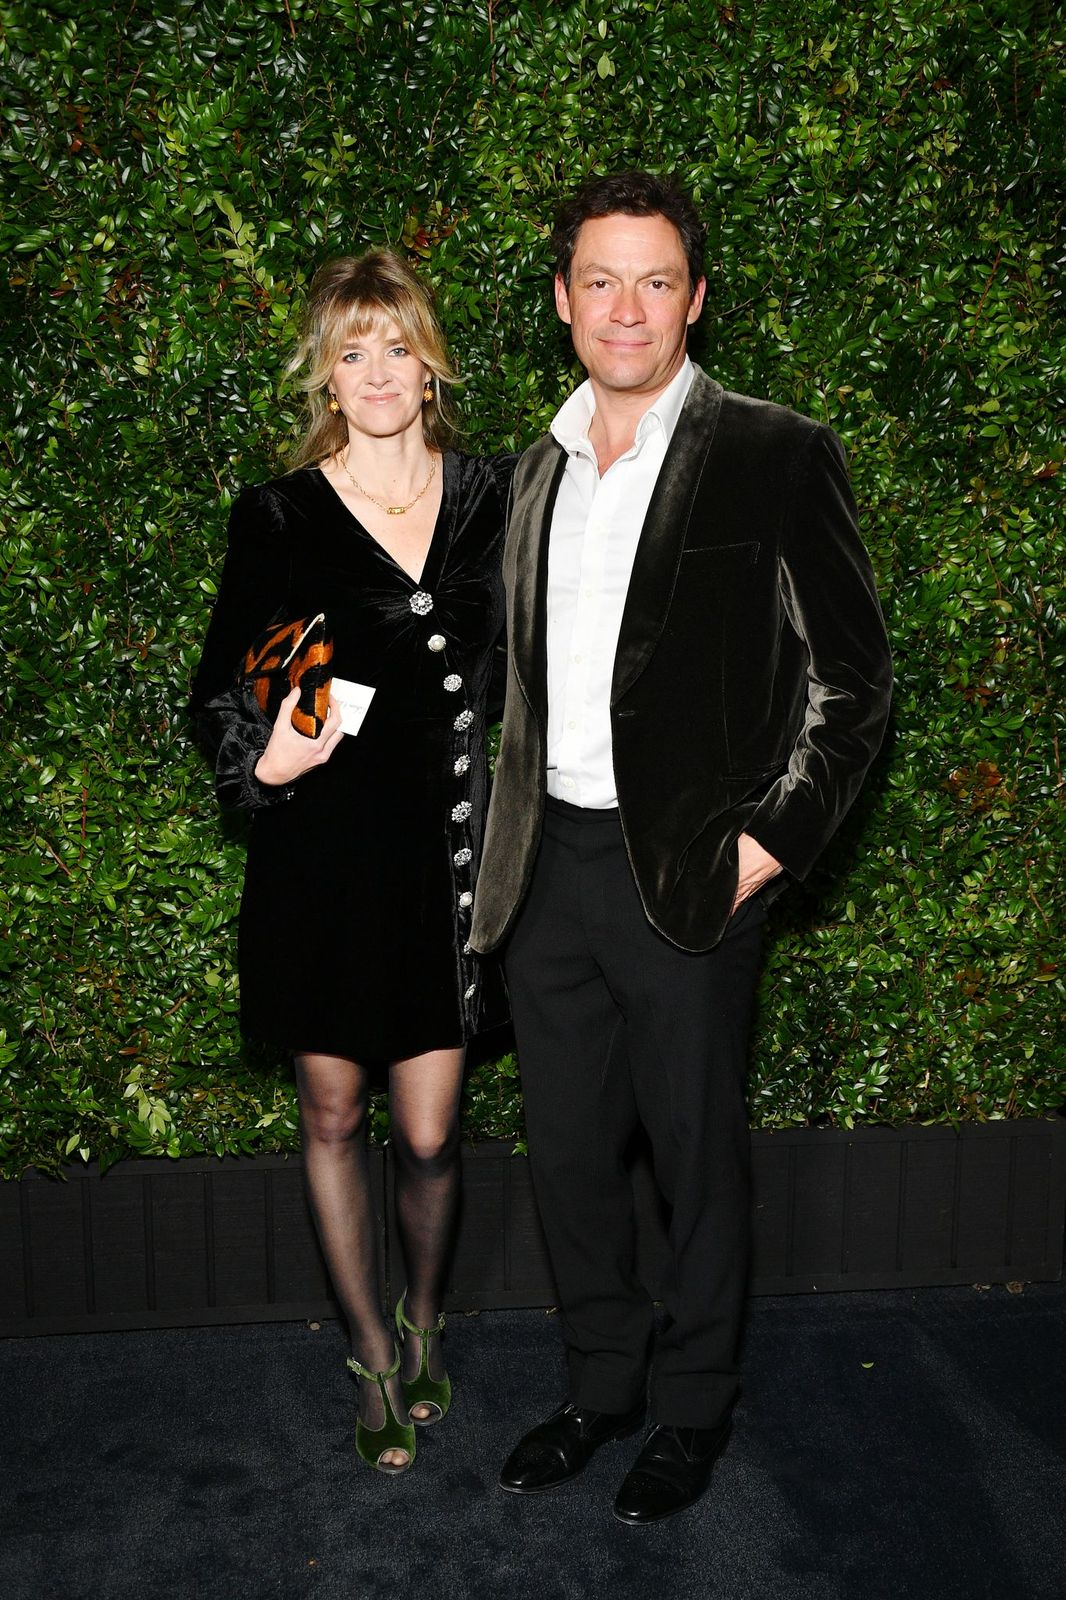 Catherine Fitzgerald and Dominic West at the Chanel And Charles Finch Pre-Oscar Awards Dinner on February 23, 2019, in Beverly Hills, California | Photo: Dia Dipasupil/WireImage/Getty Images